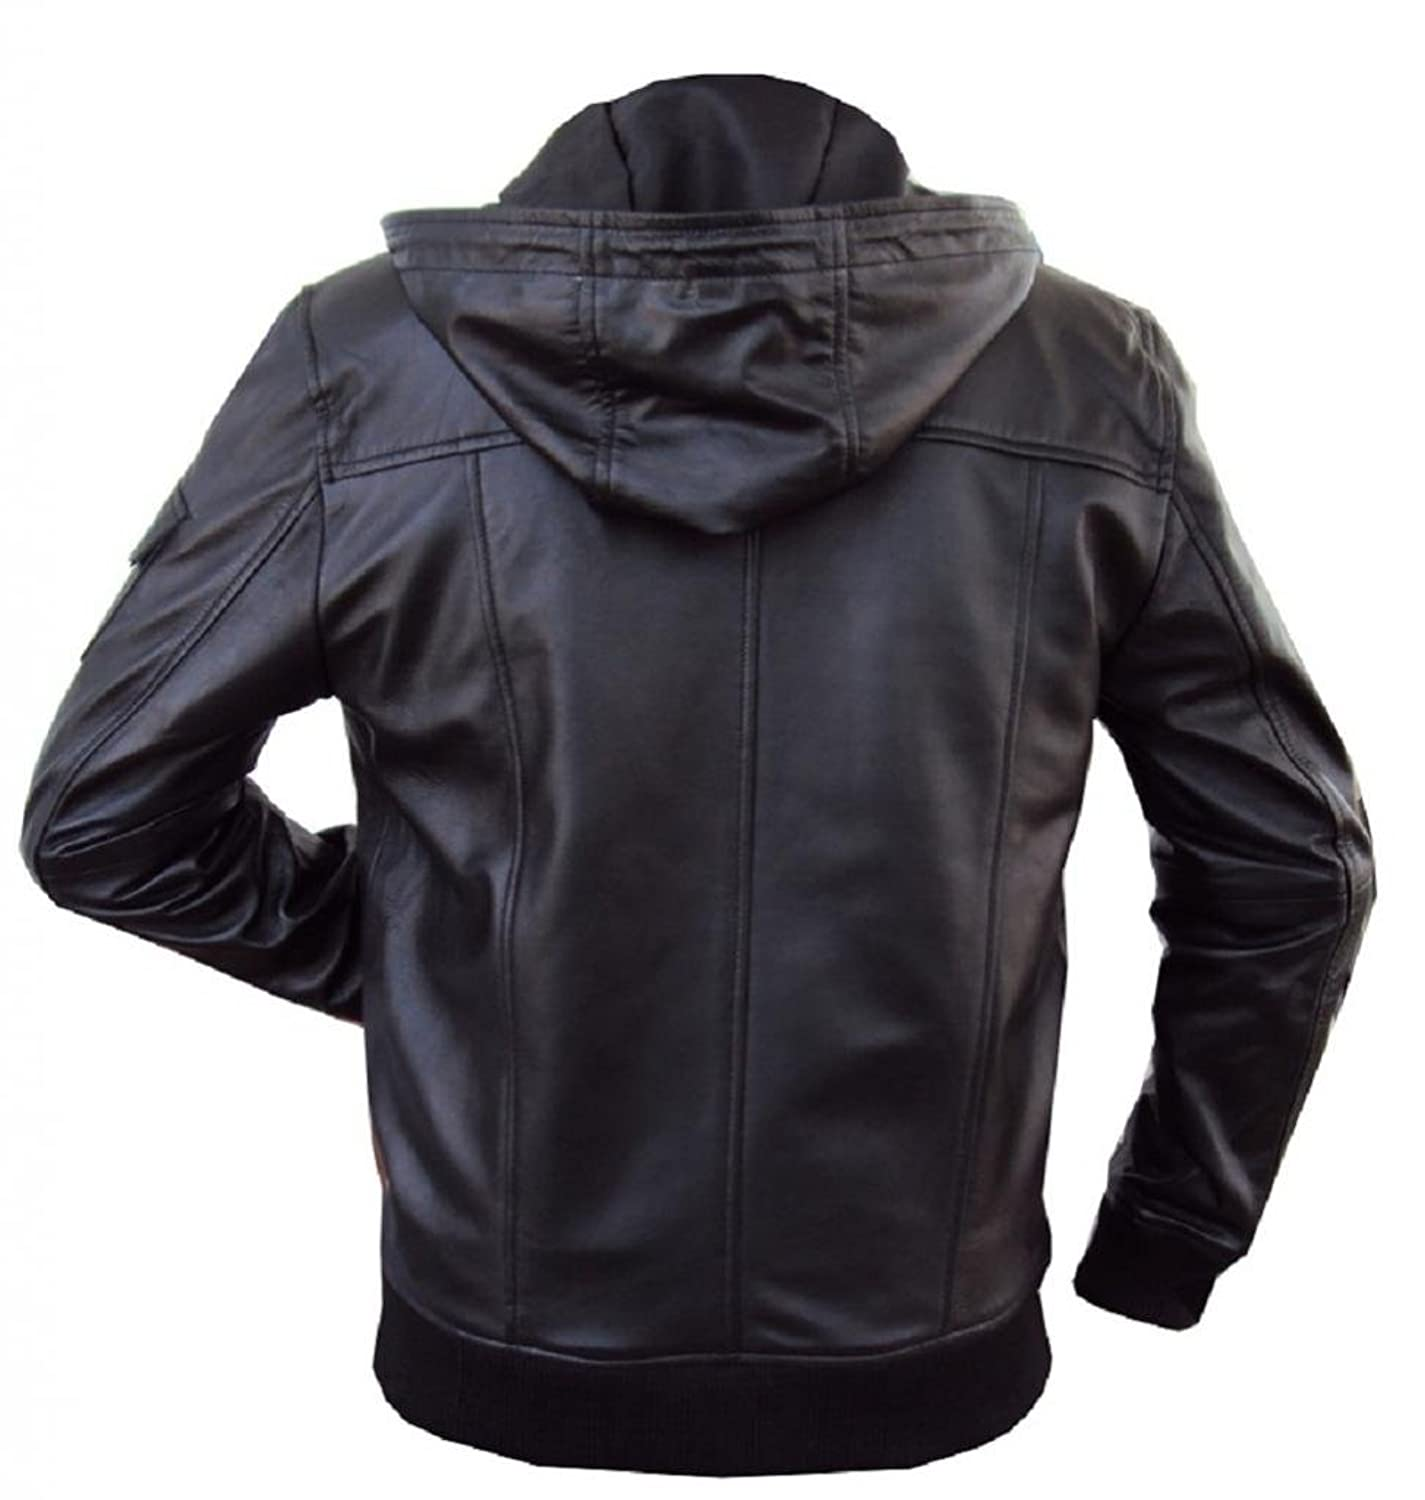 Leather jacket and hoodie - The Leather Factory Men S Lambskin Leather Fixed Hoodie Jacket With Knitted Ribs At Amazon Men S Clothing Store